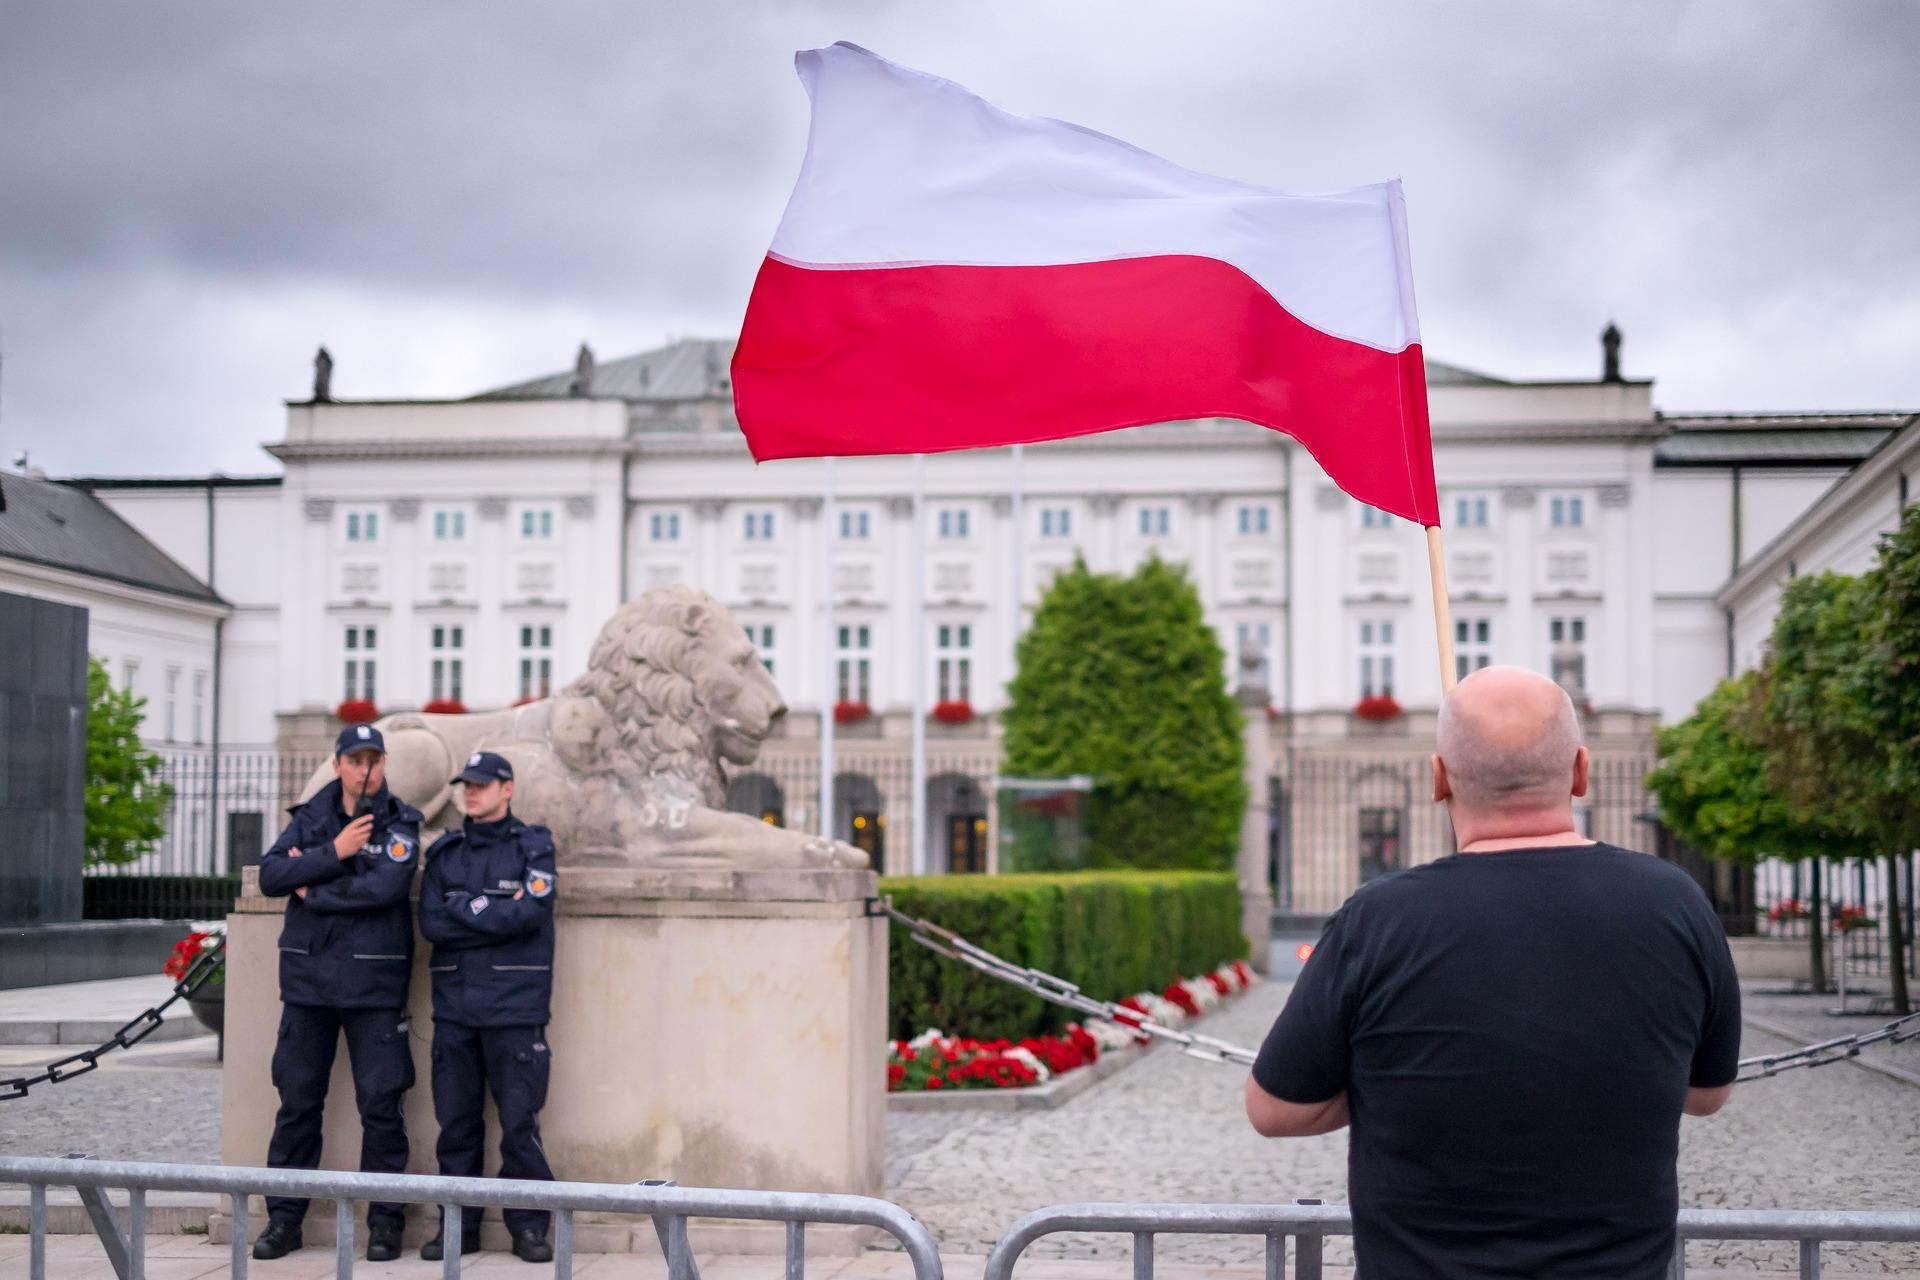 Protests in Poland